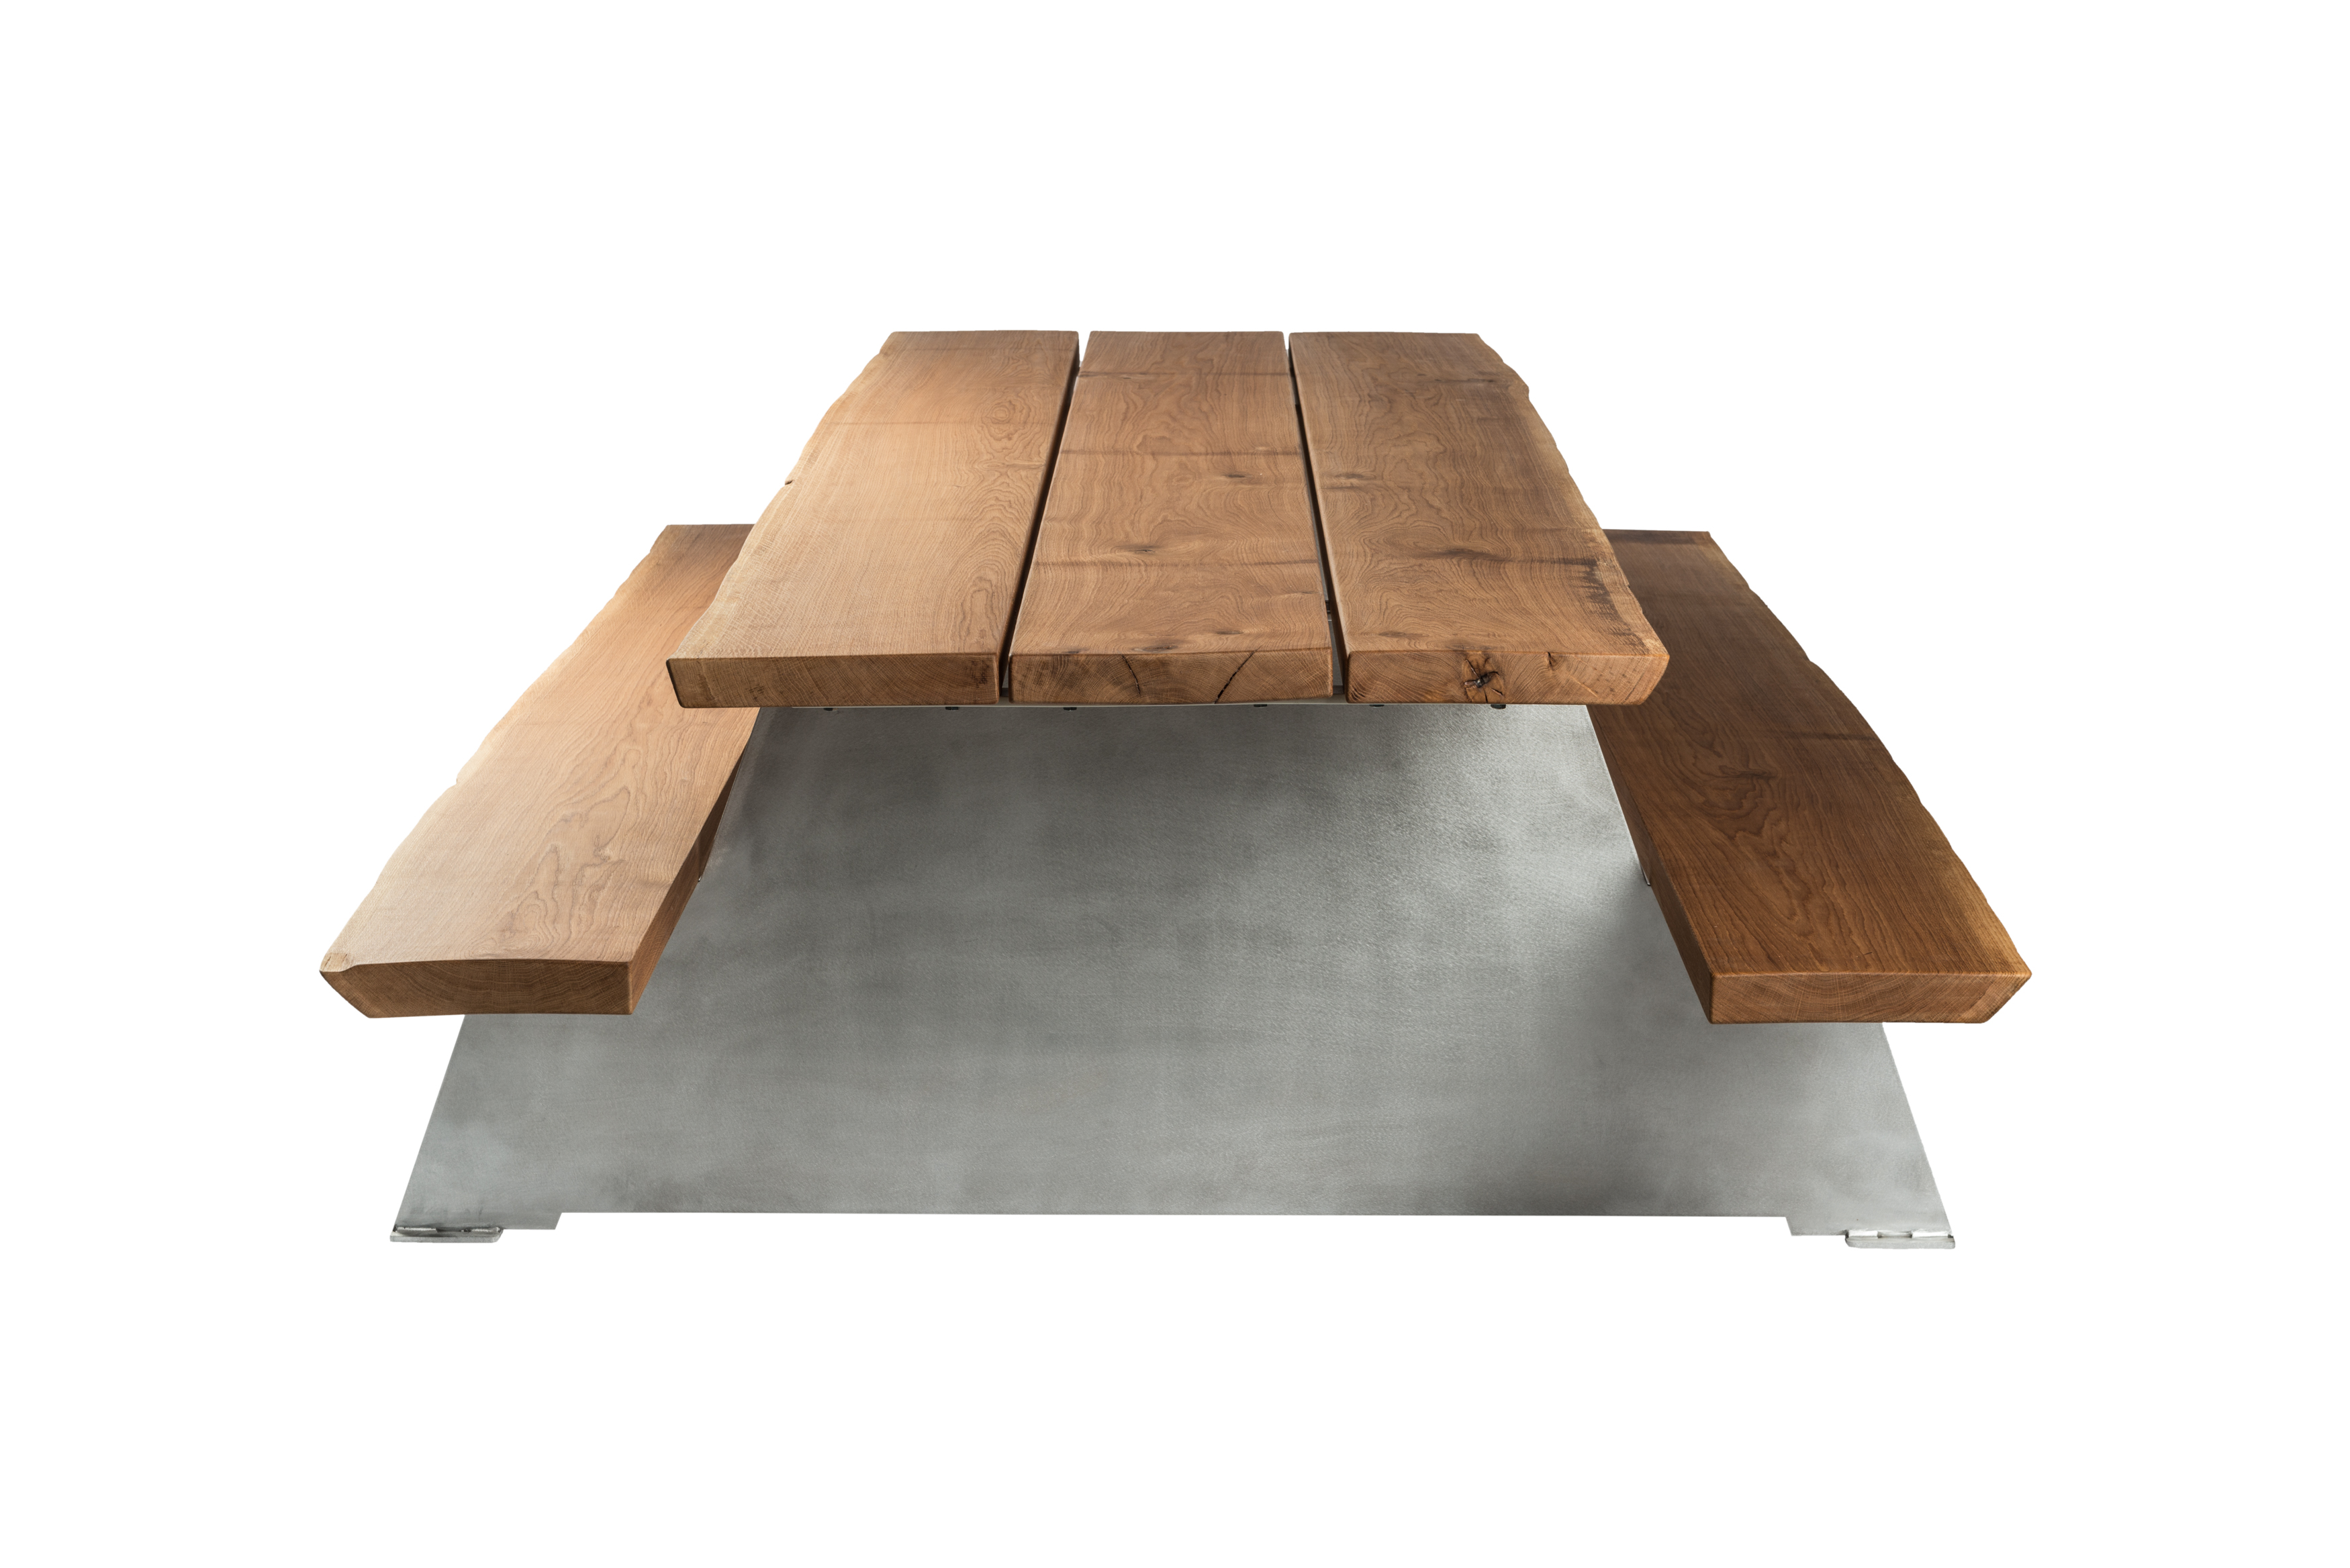 handmade picnic tables • cassecroute • wood and aluminium